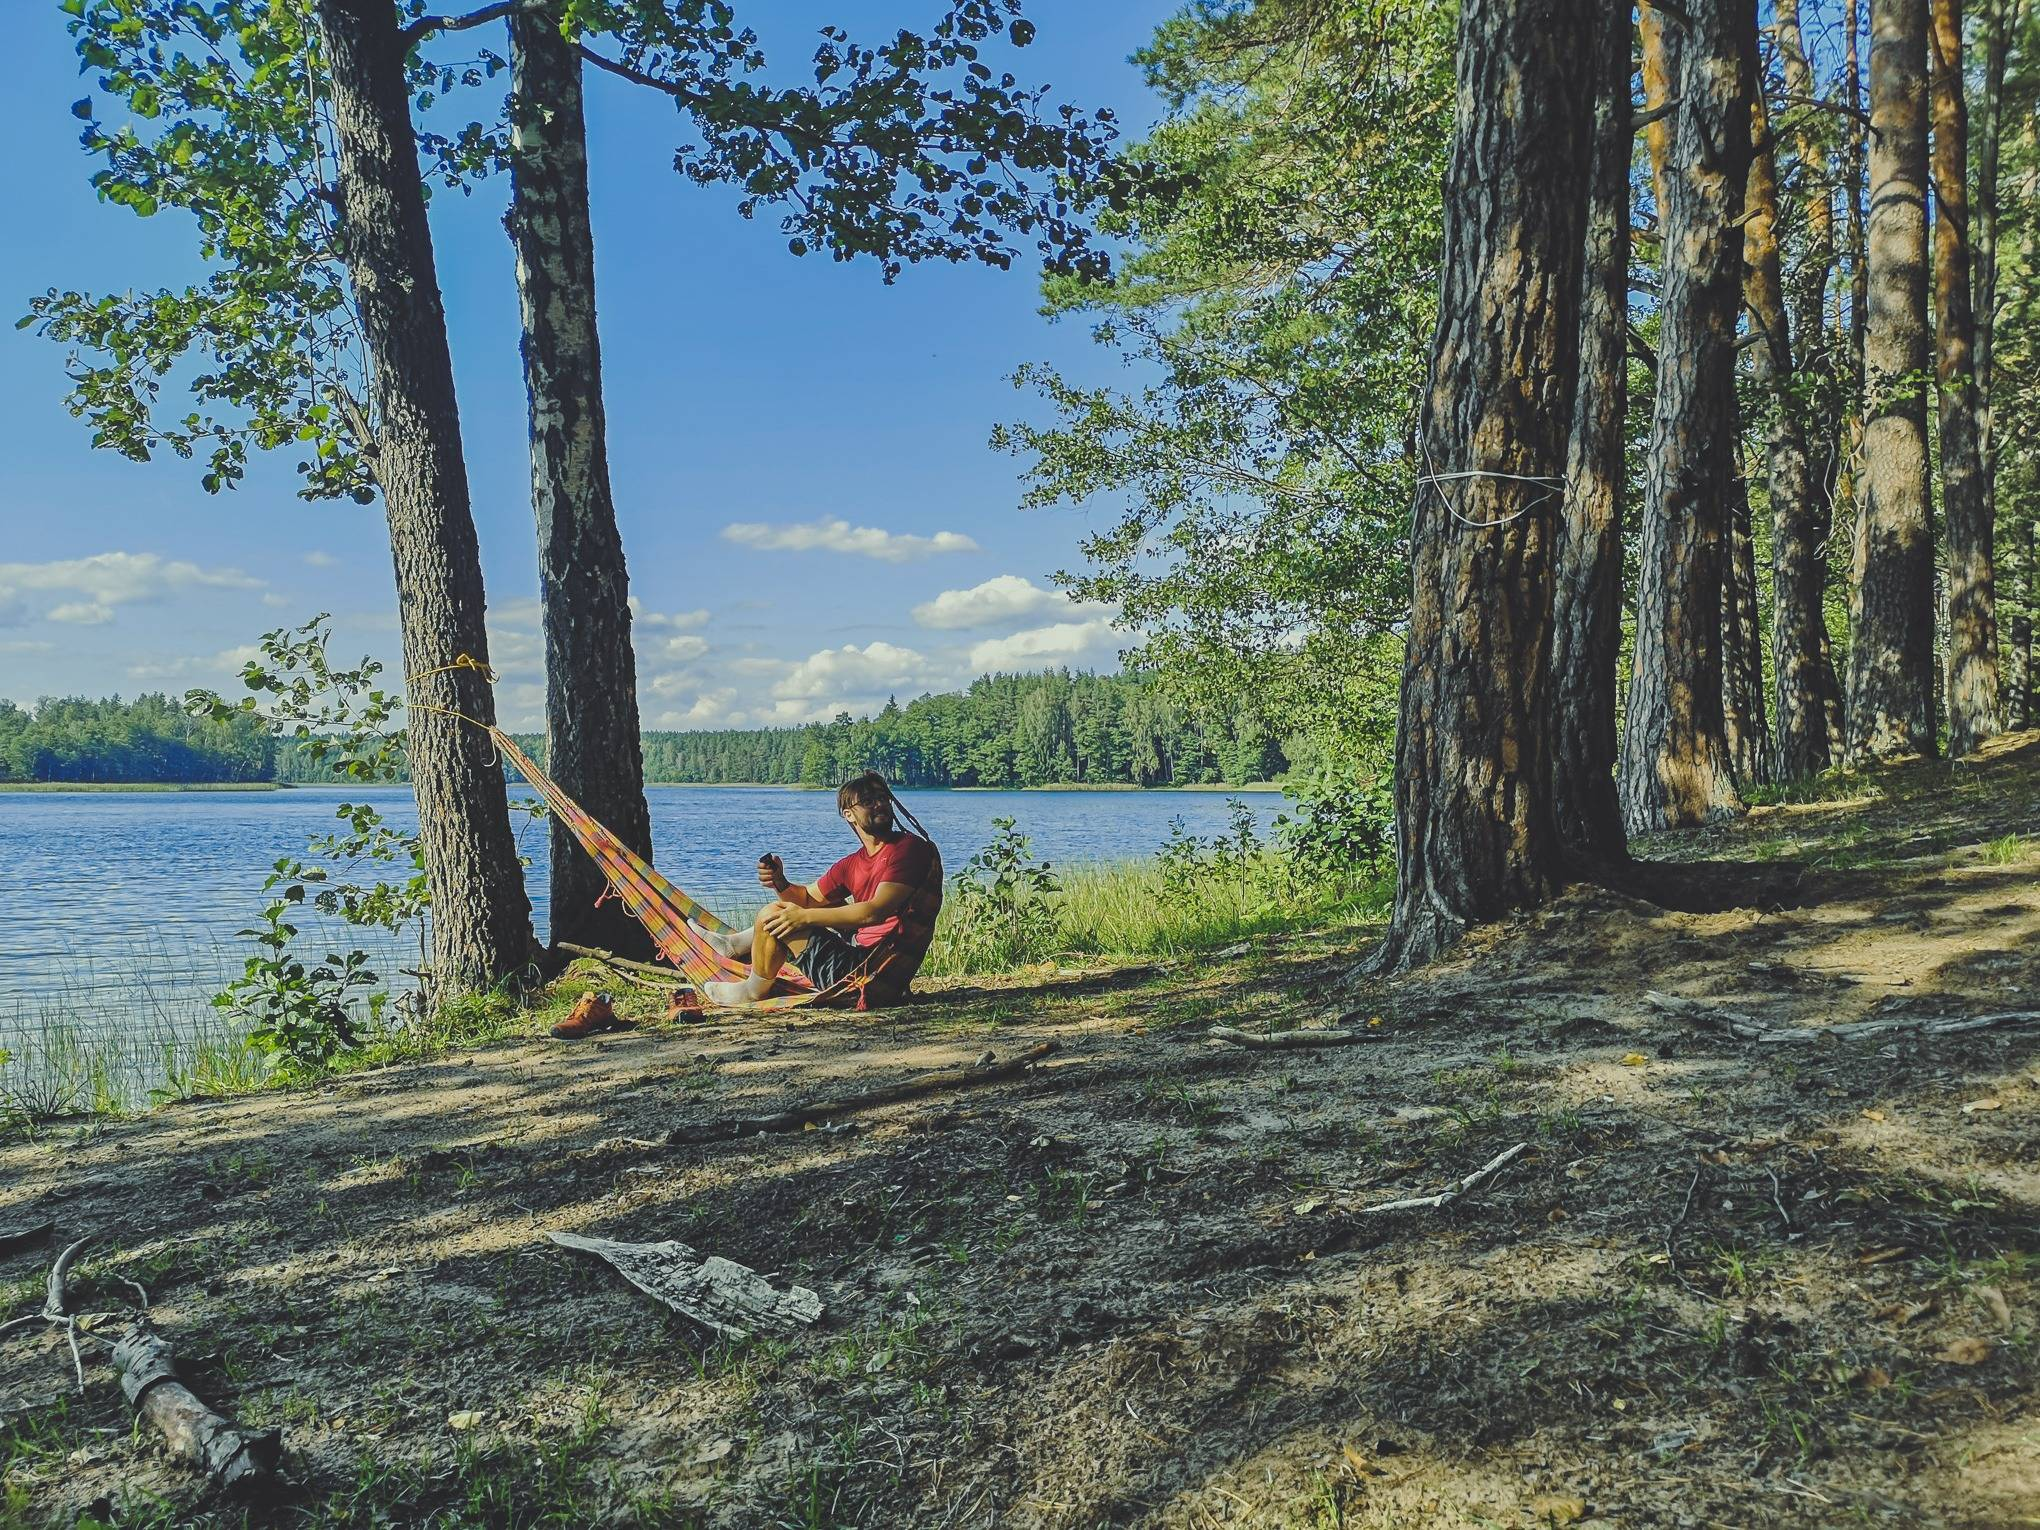 Setting up a camp near Black Lakajai lake in Labanoras Regional Park, Lithuania. Photo Alis Monte [CC BY-SA 4.0], via Connecting the Dots